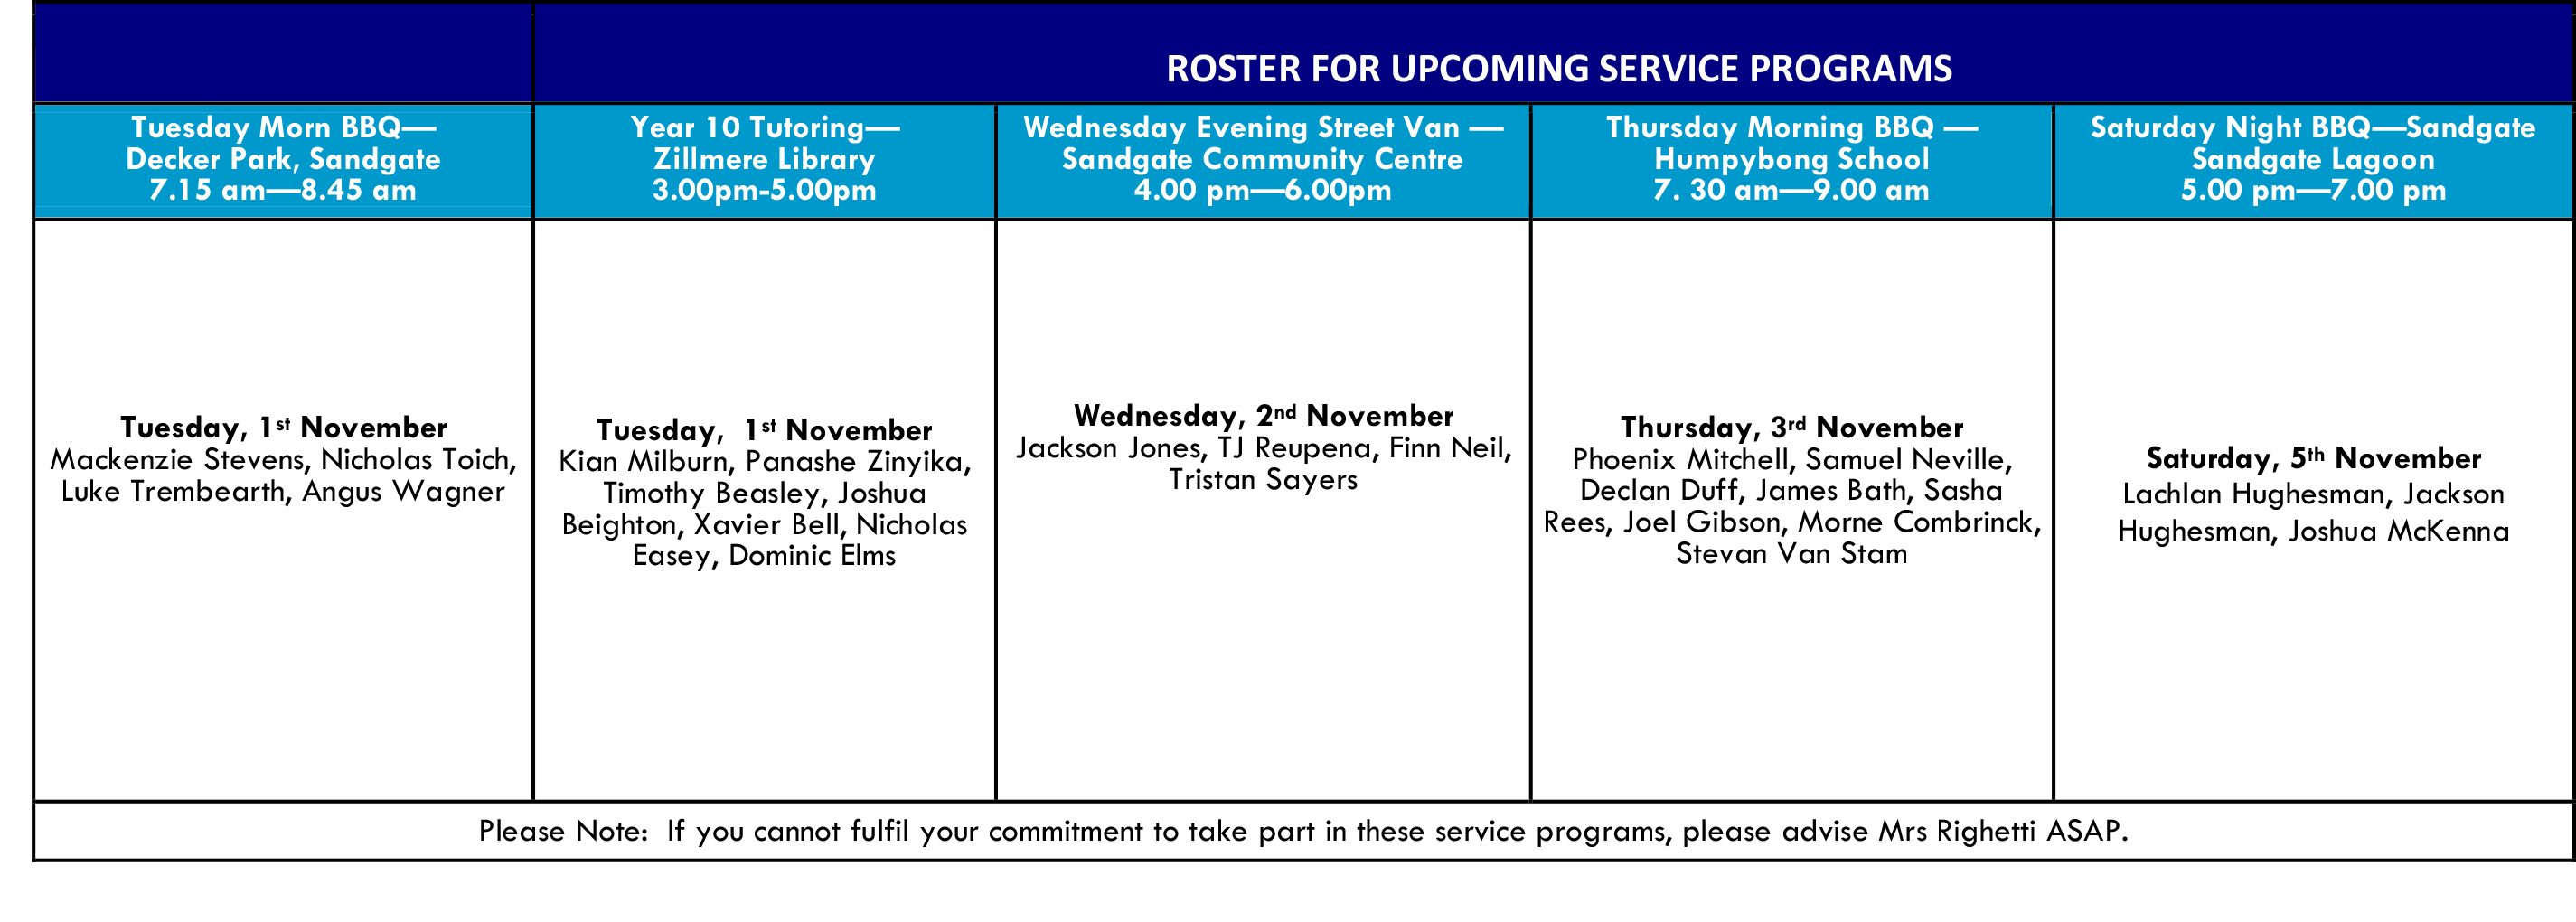 ROSTER-FOR-UPCOMING-SERVICE-PROGRAMS.jpg